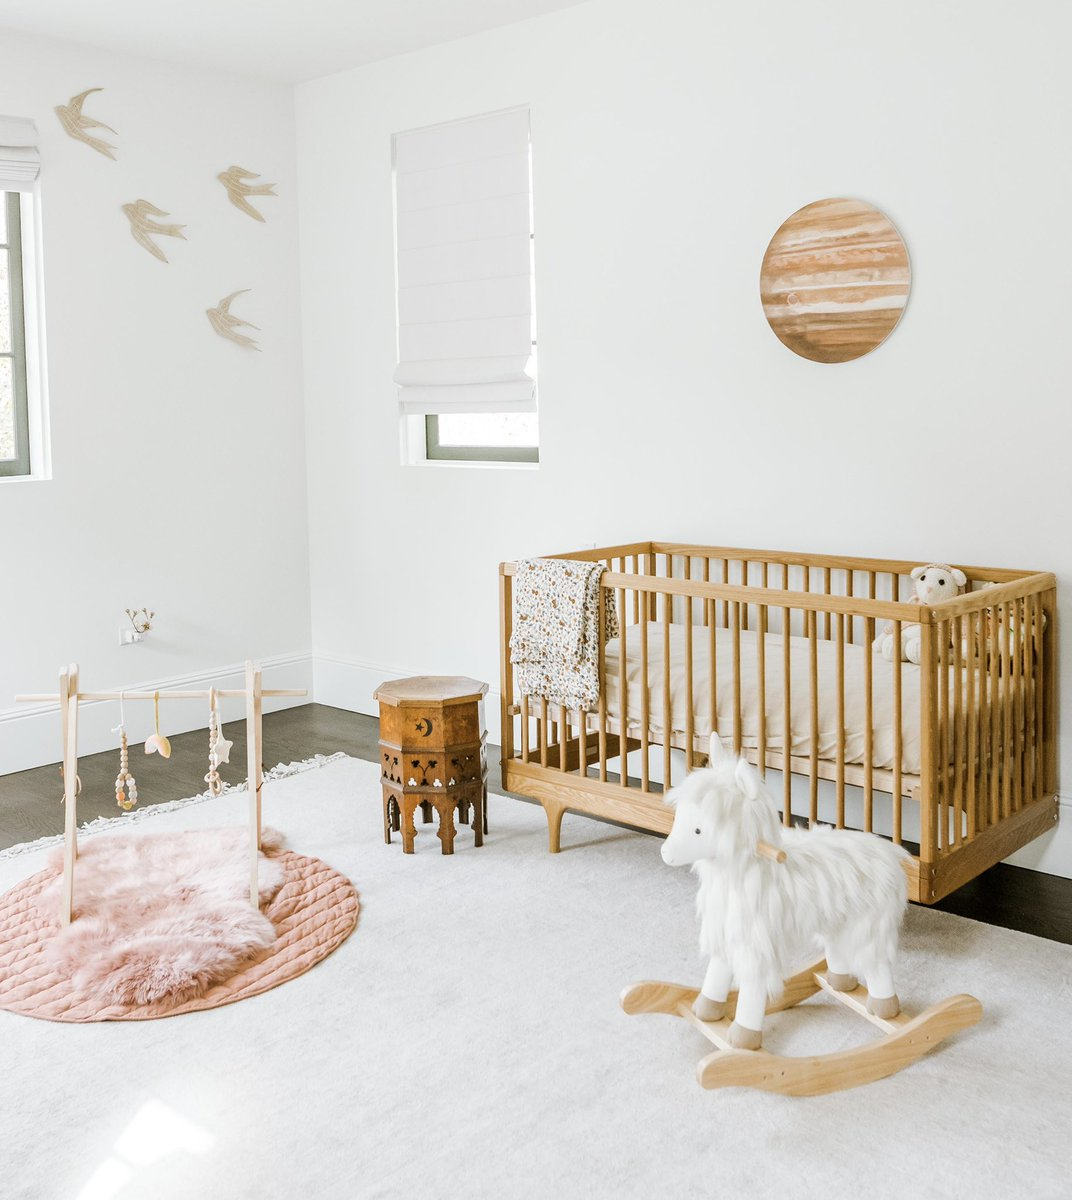 Juju's nursery ✨ I had so much fun designing this space for Jupiter and I'm so excited to finally share it with you all! Tap the link below to hear all about how I landed on this calming, grounding, minimalistic space for our little girl.